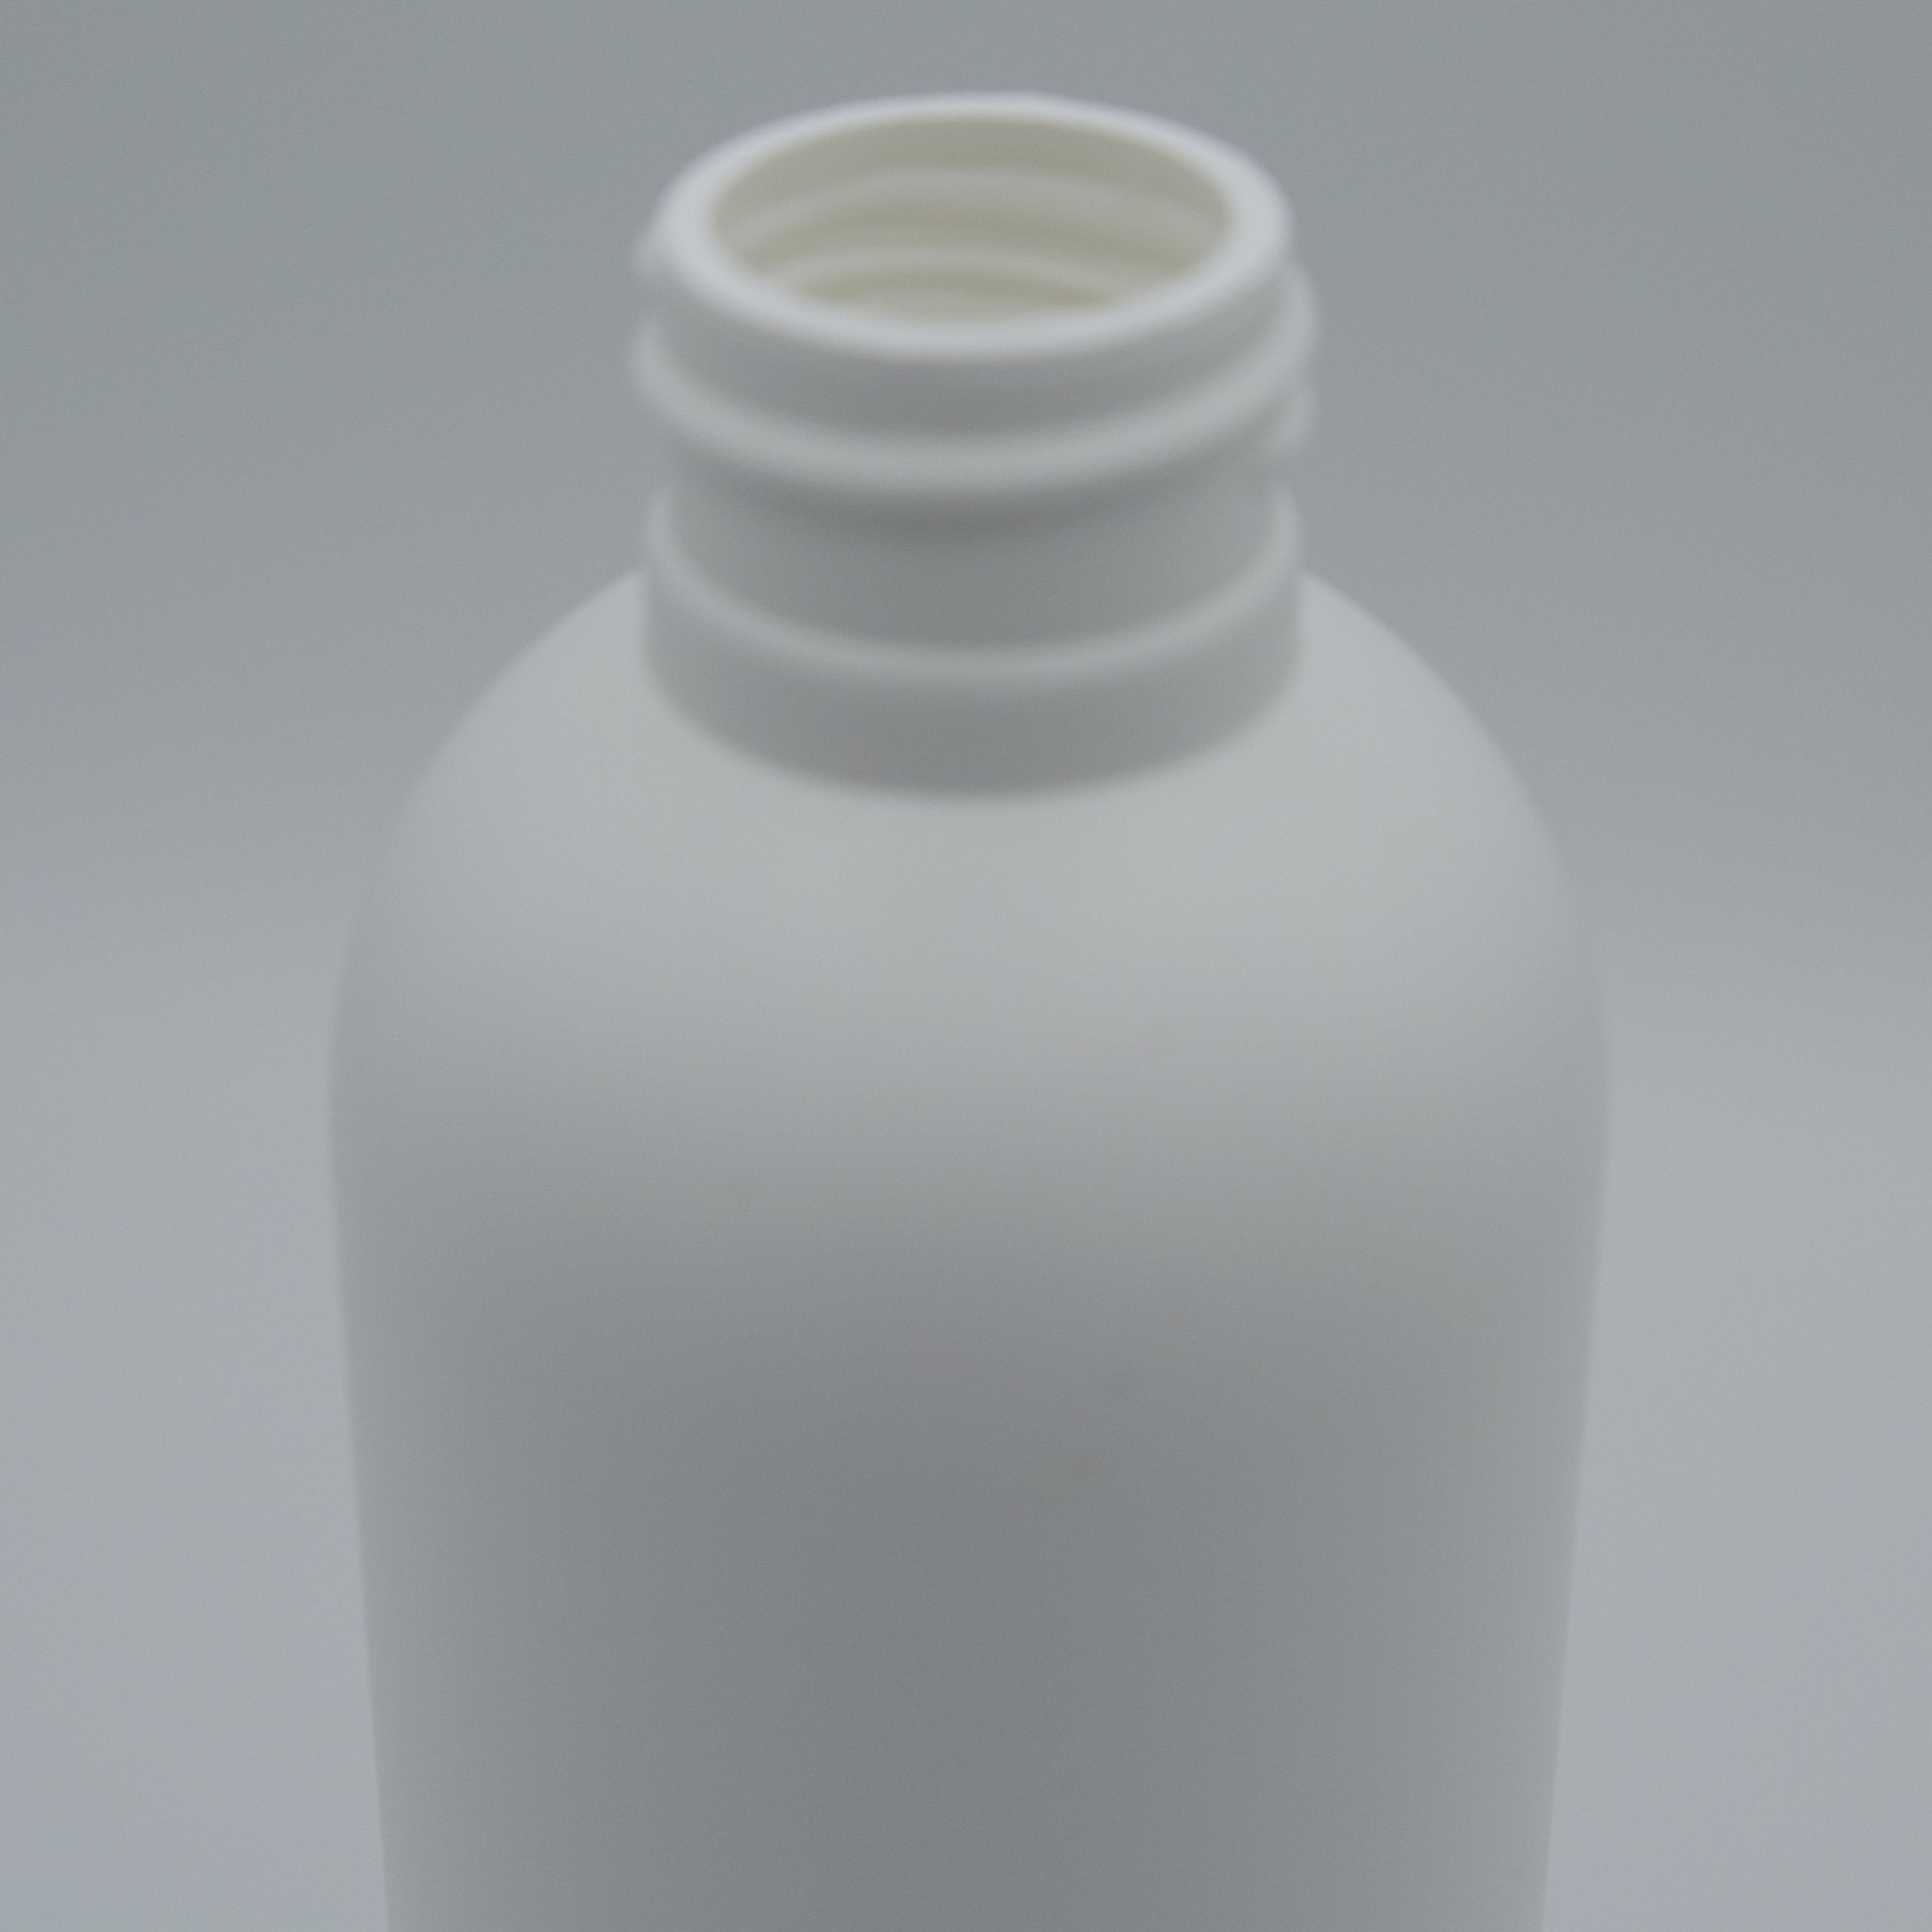 8oz | White Bottle | Neck Size 24/410 | Bullet (420 PCS per Case) | SSW | SHSalons.com